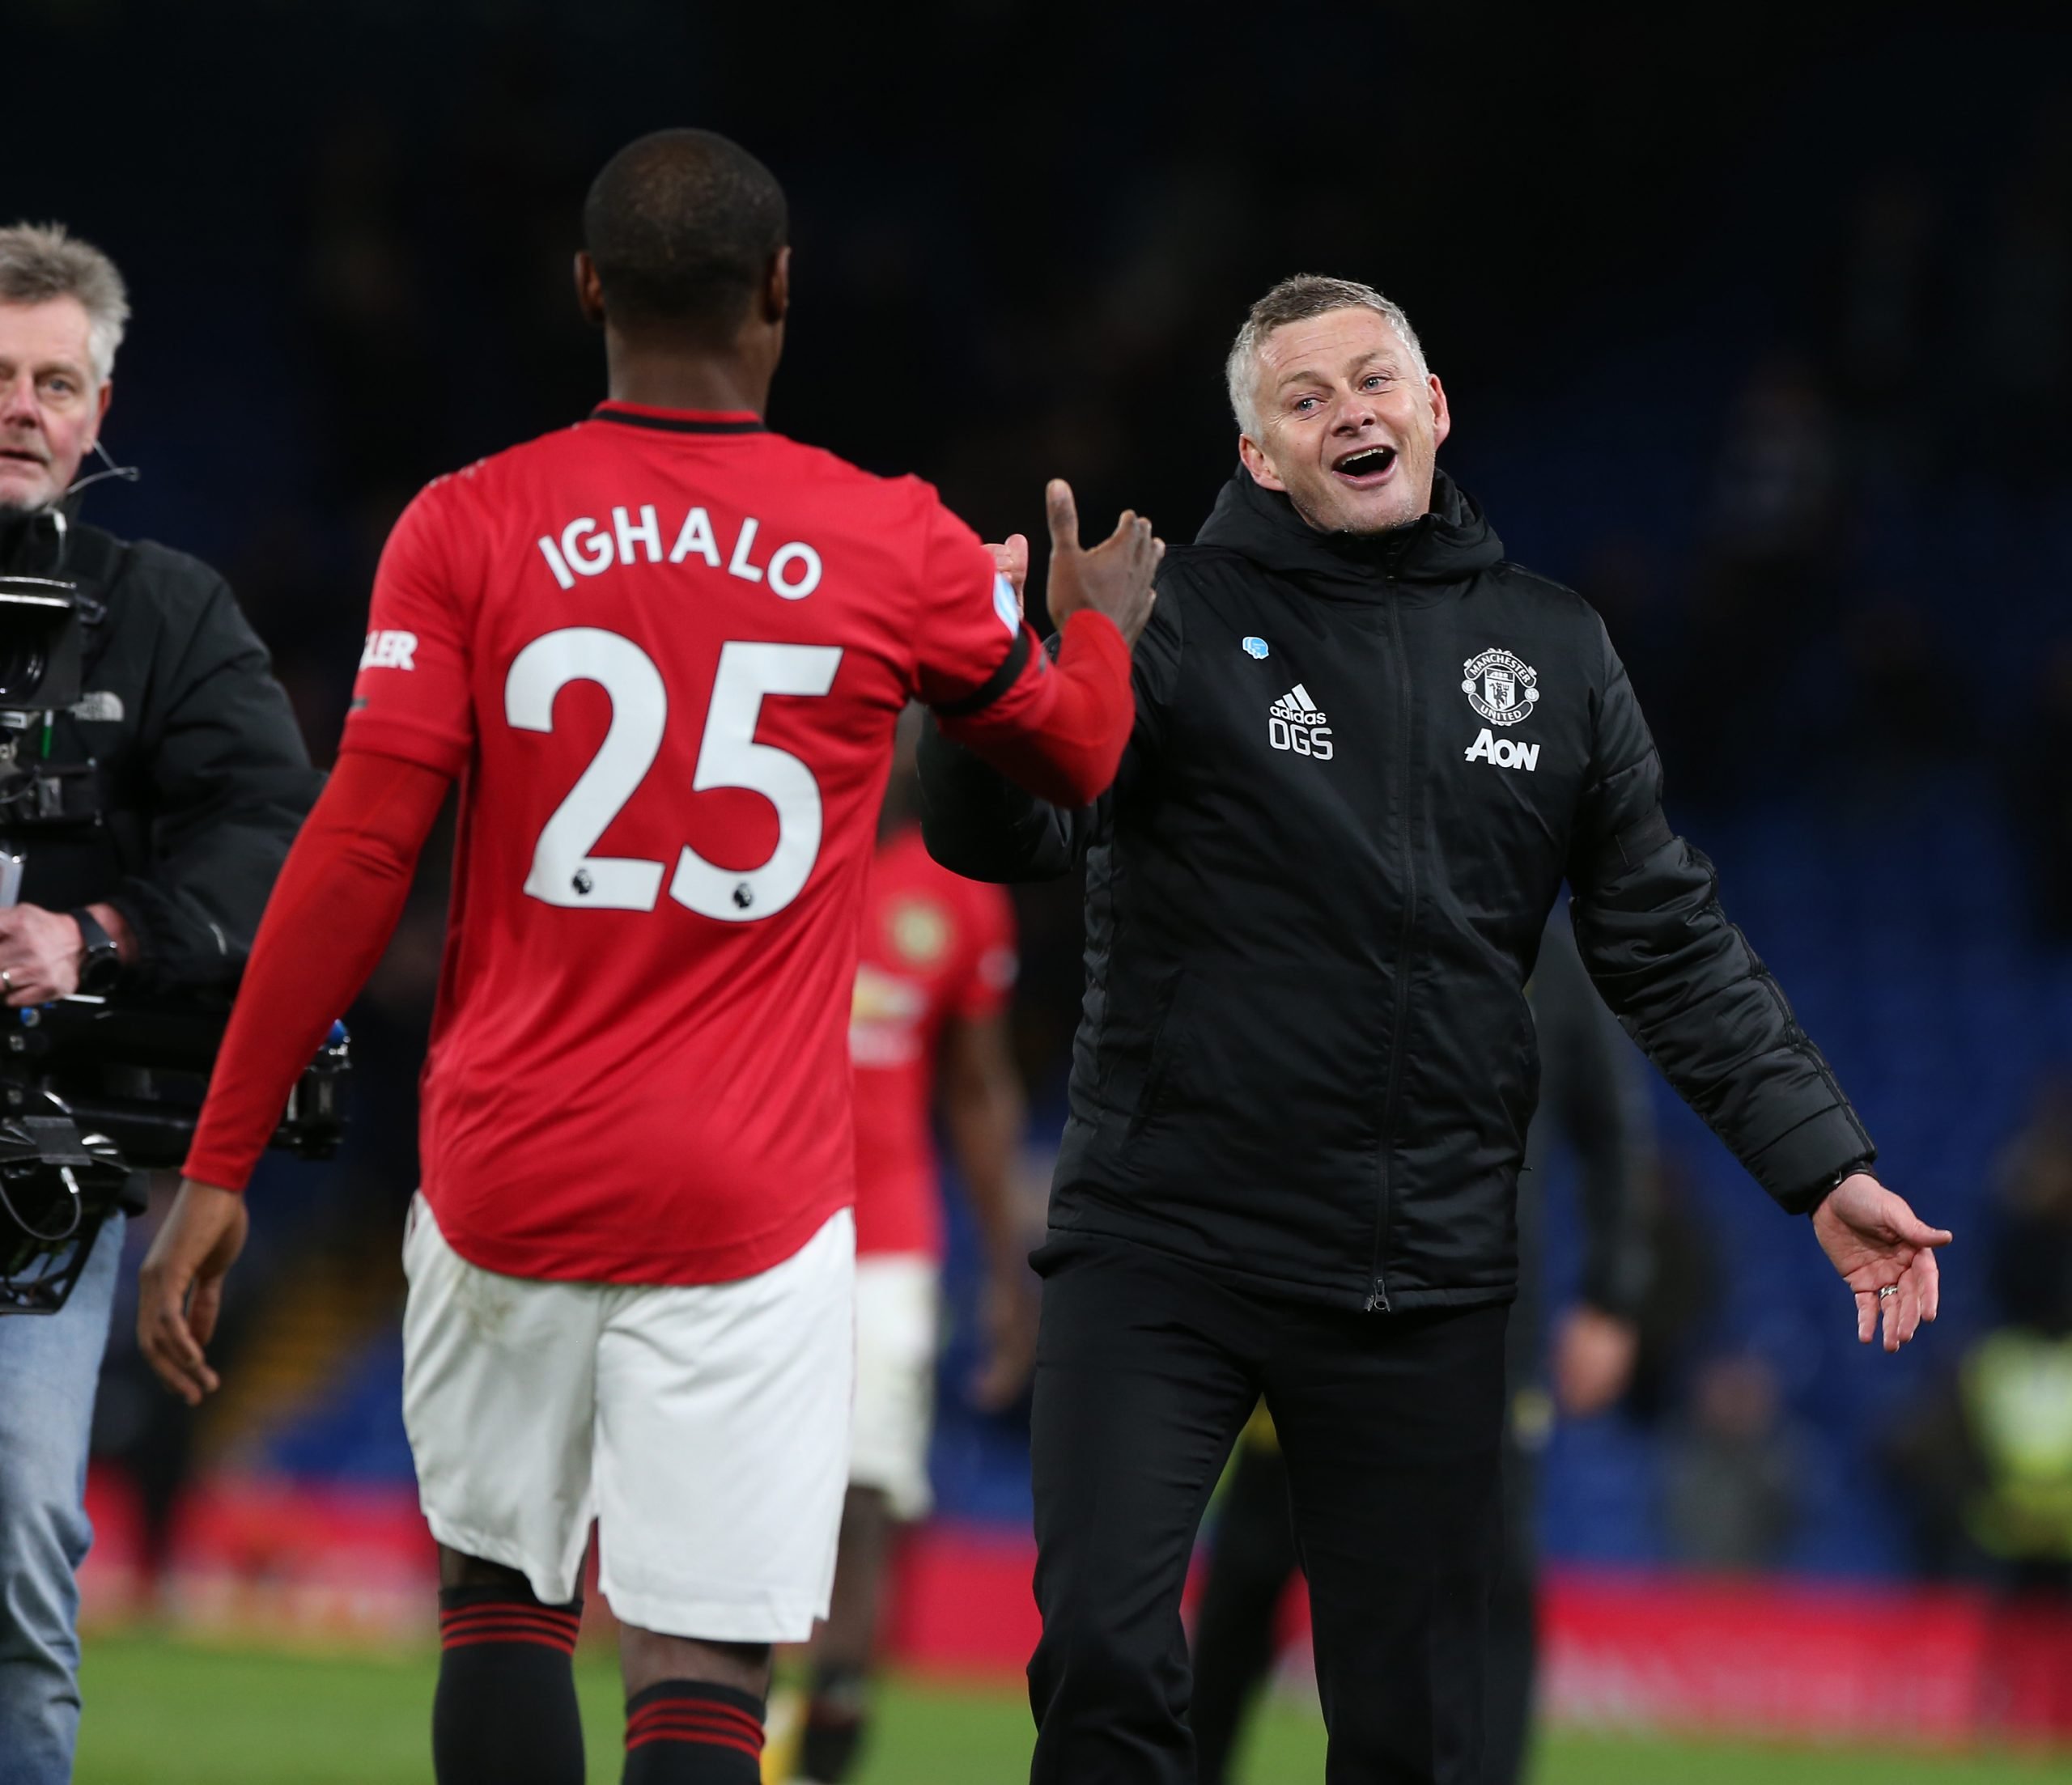 Stam: Ighalo Needs Teammates Support To Thrive At Man United